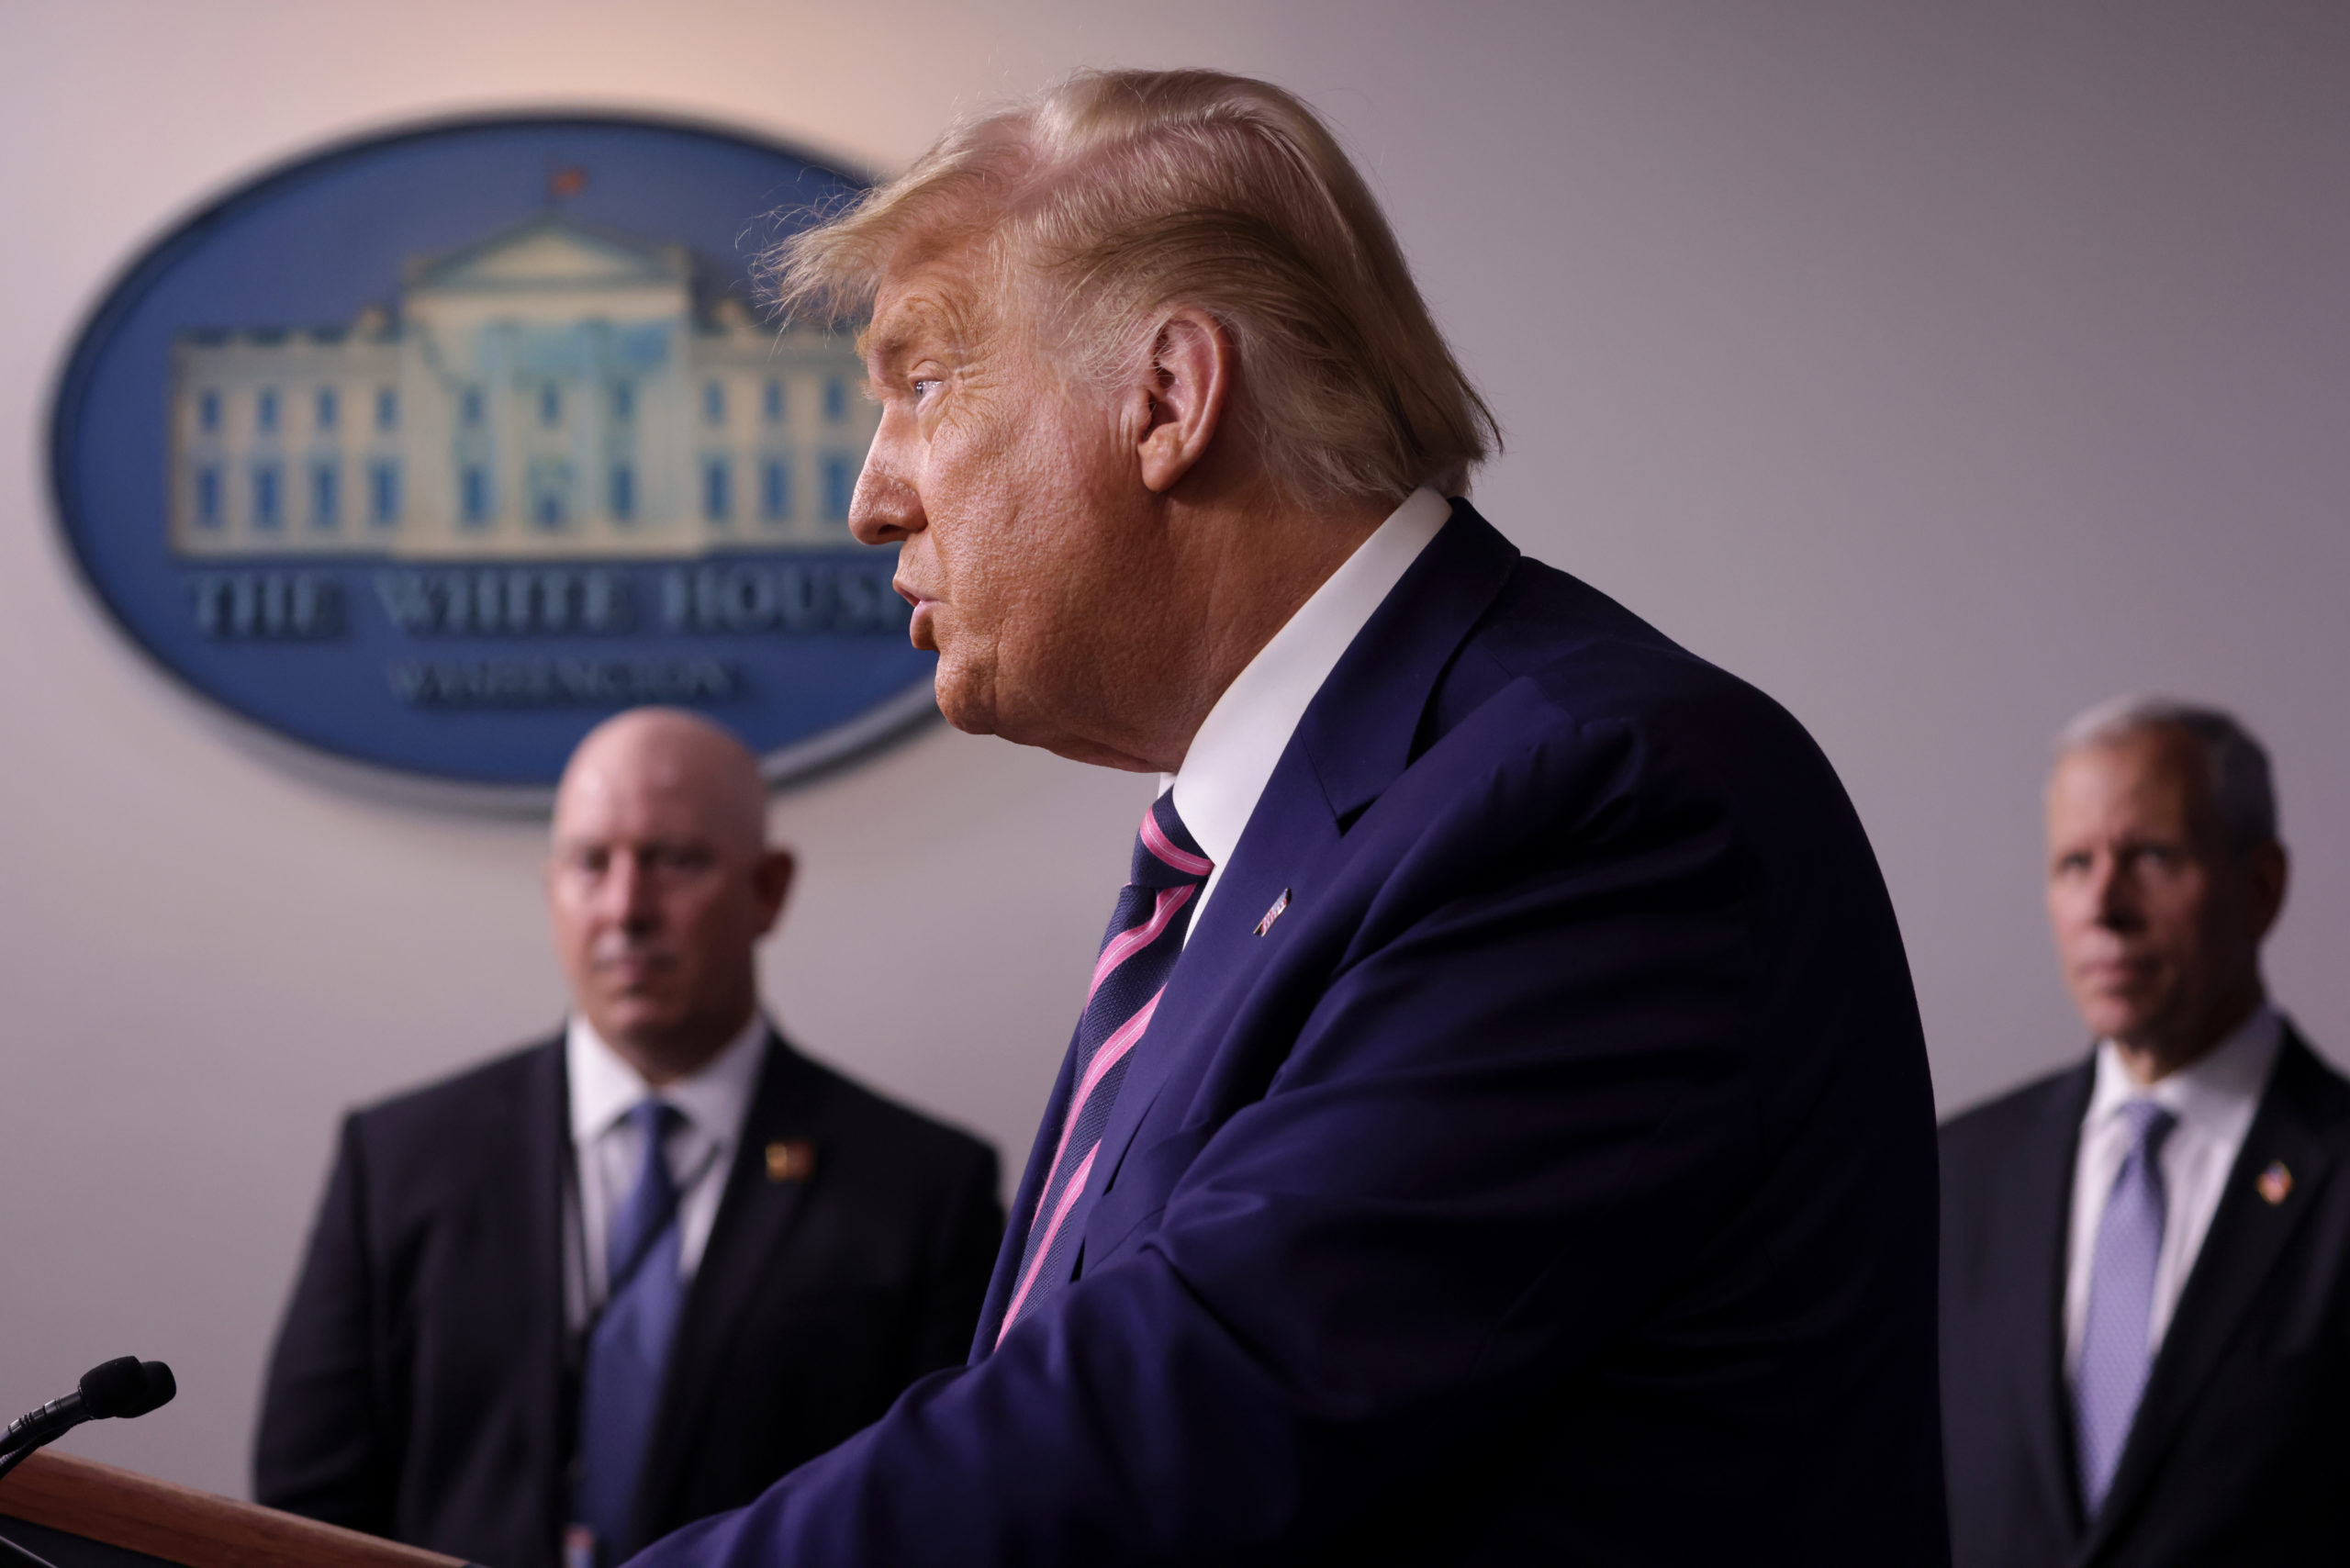 WASHINGTON, DC - SEPTEMBER 18: U.S. President Donald Trump speaks during a news conference in the James Brady Press Briefing Room of the White House September 18, 2020 in Washington, DC. President Trump will travel to Bemidji, Minnesota, later today to campaign for the upcoming presidential election. (Photo by Alex Wong/Getty Images)